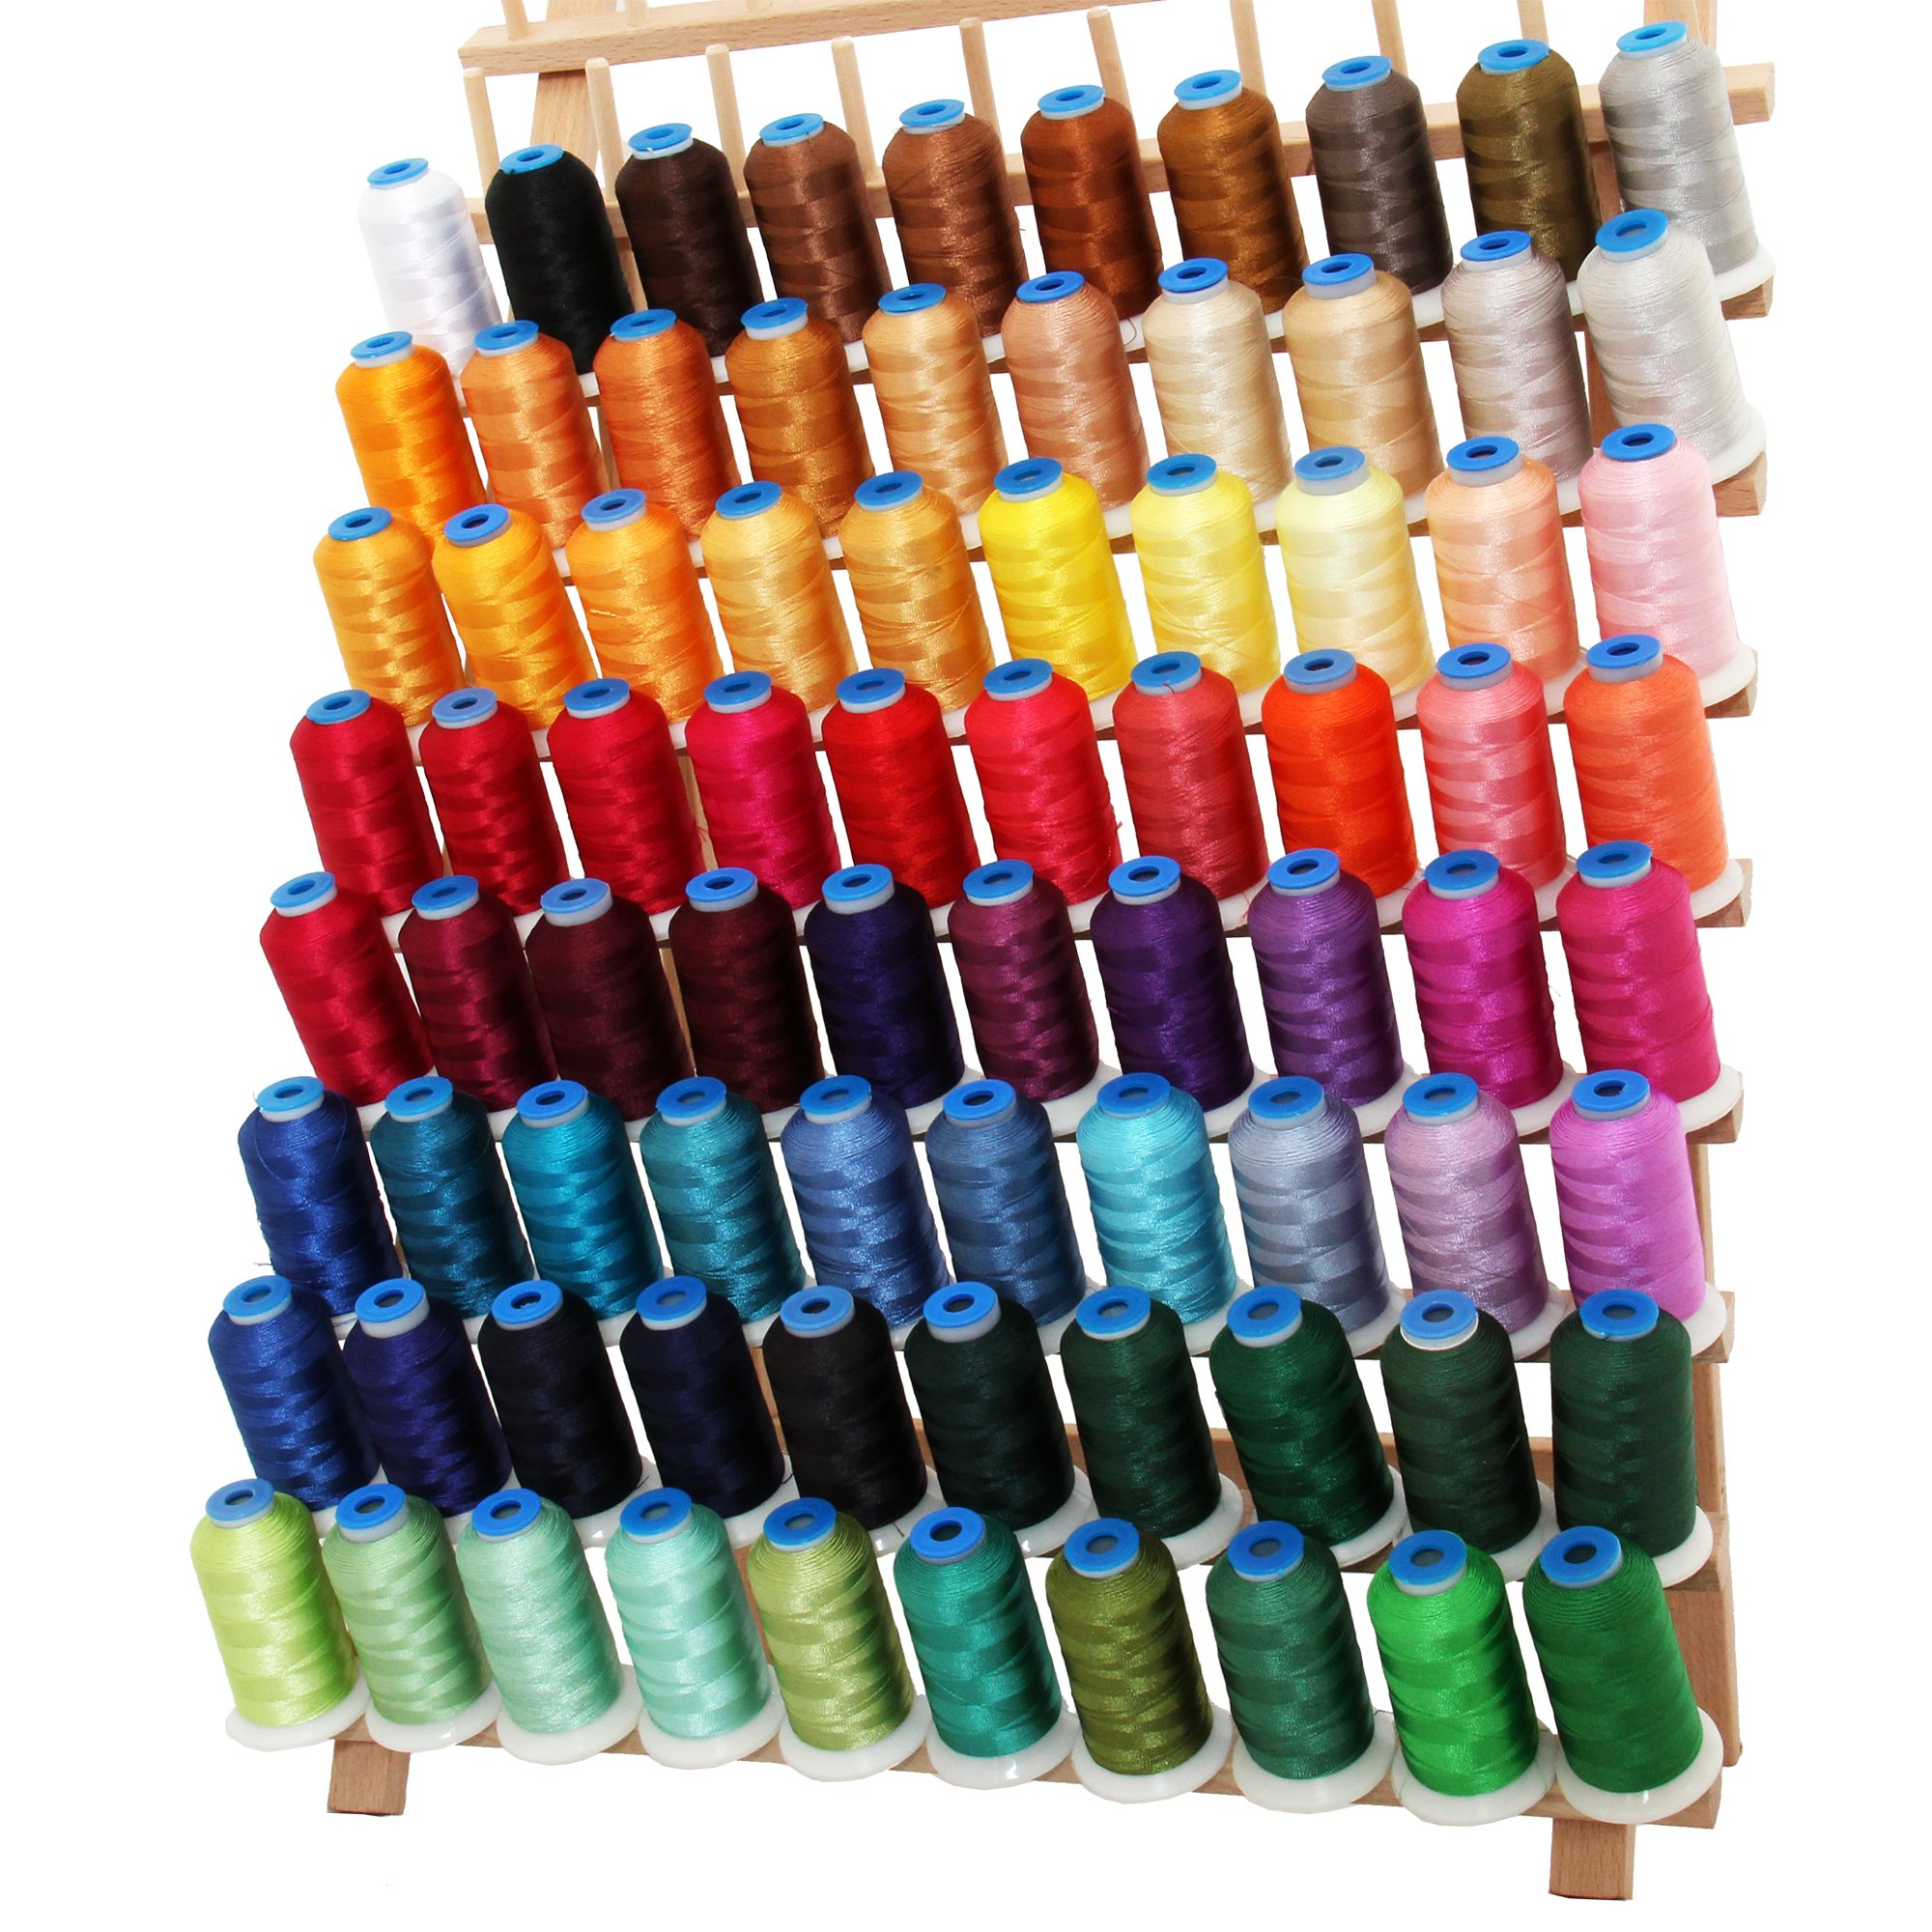 80 Cone Rayon Embroidery Thread Set - Includes Black and White - 1000m Cones - 40wt - Threadart by Threadart